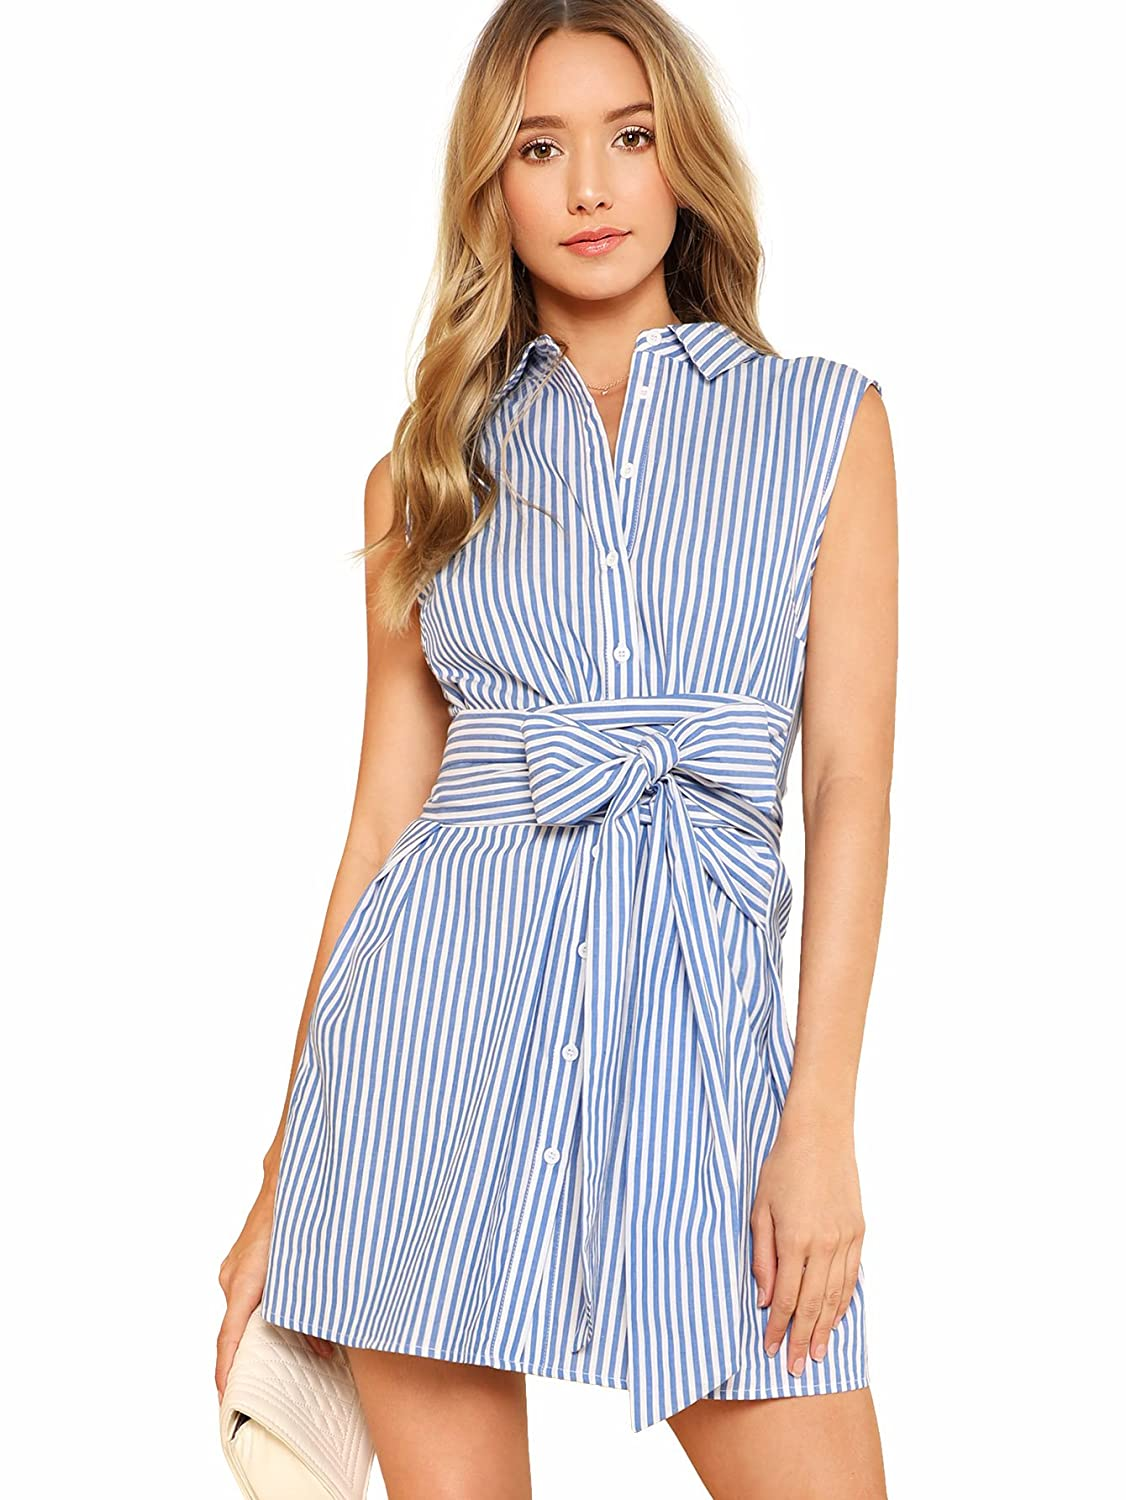 Romwe Womens Cute Striped Belted Button Up Collar Summer Short